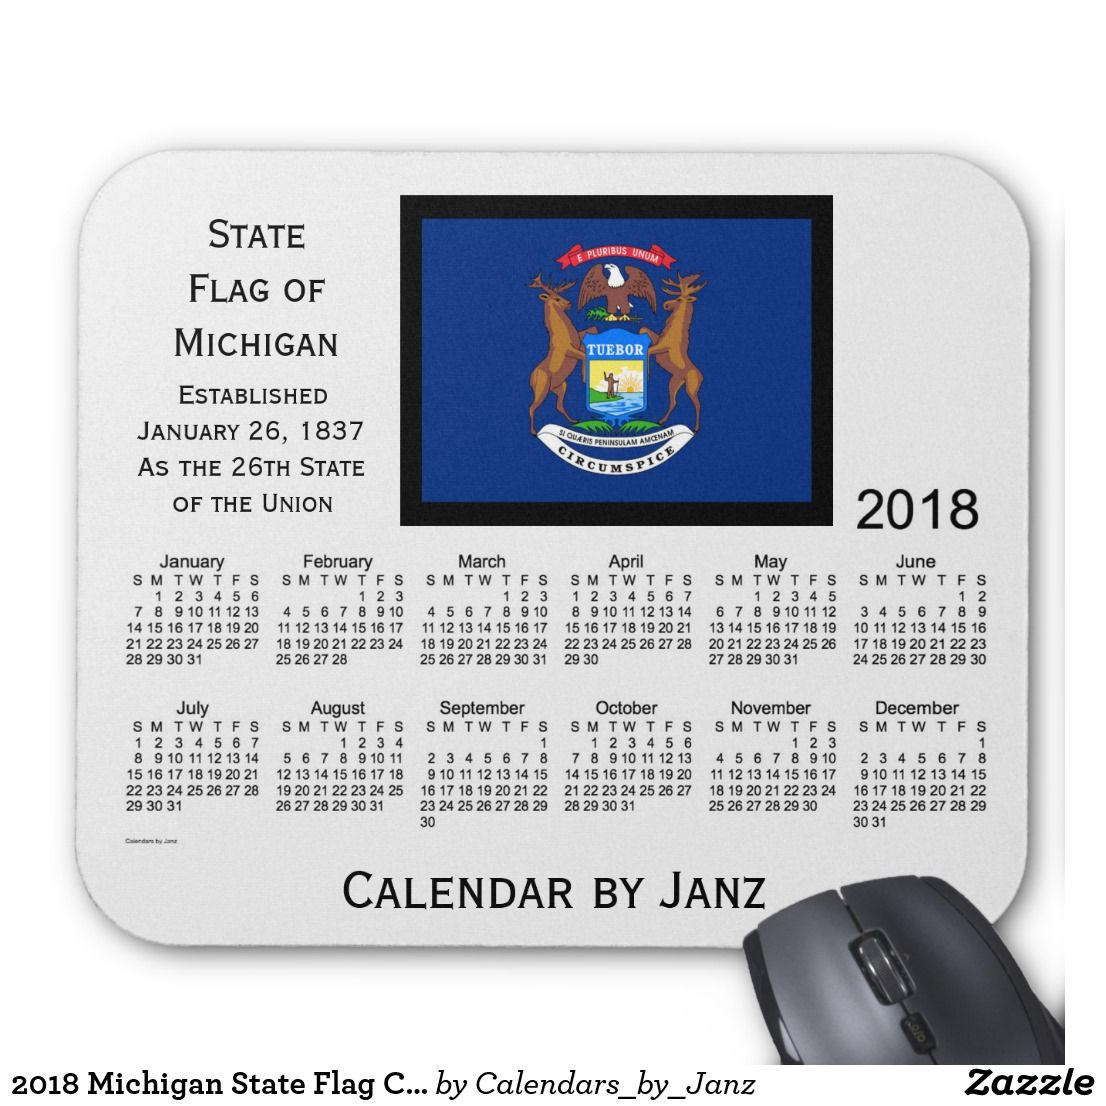 2018 Michigan State Flag Calendar by Janz Mouse Pad | Repinner's